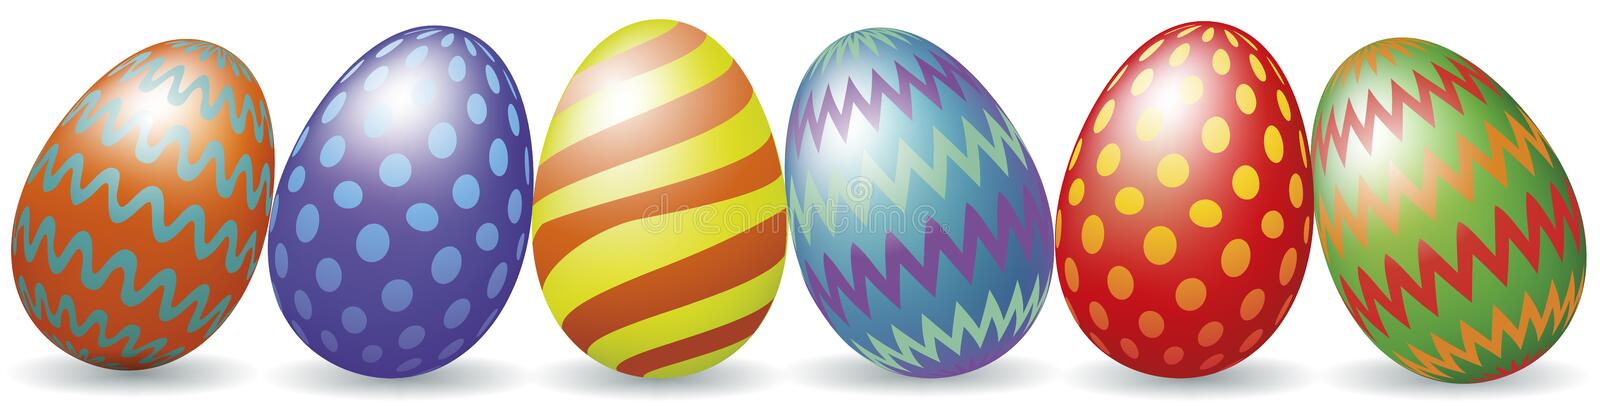 Easter eggs with shadow. Colorful Easter eggs with shadow isolated on white vector illustration